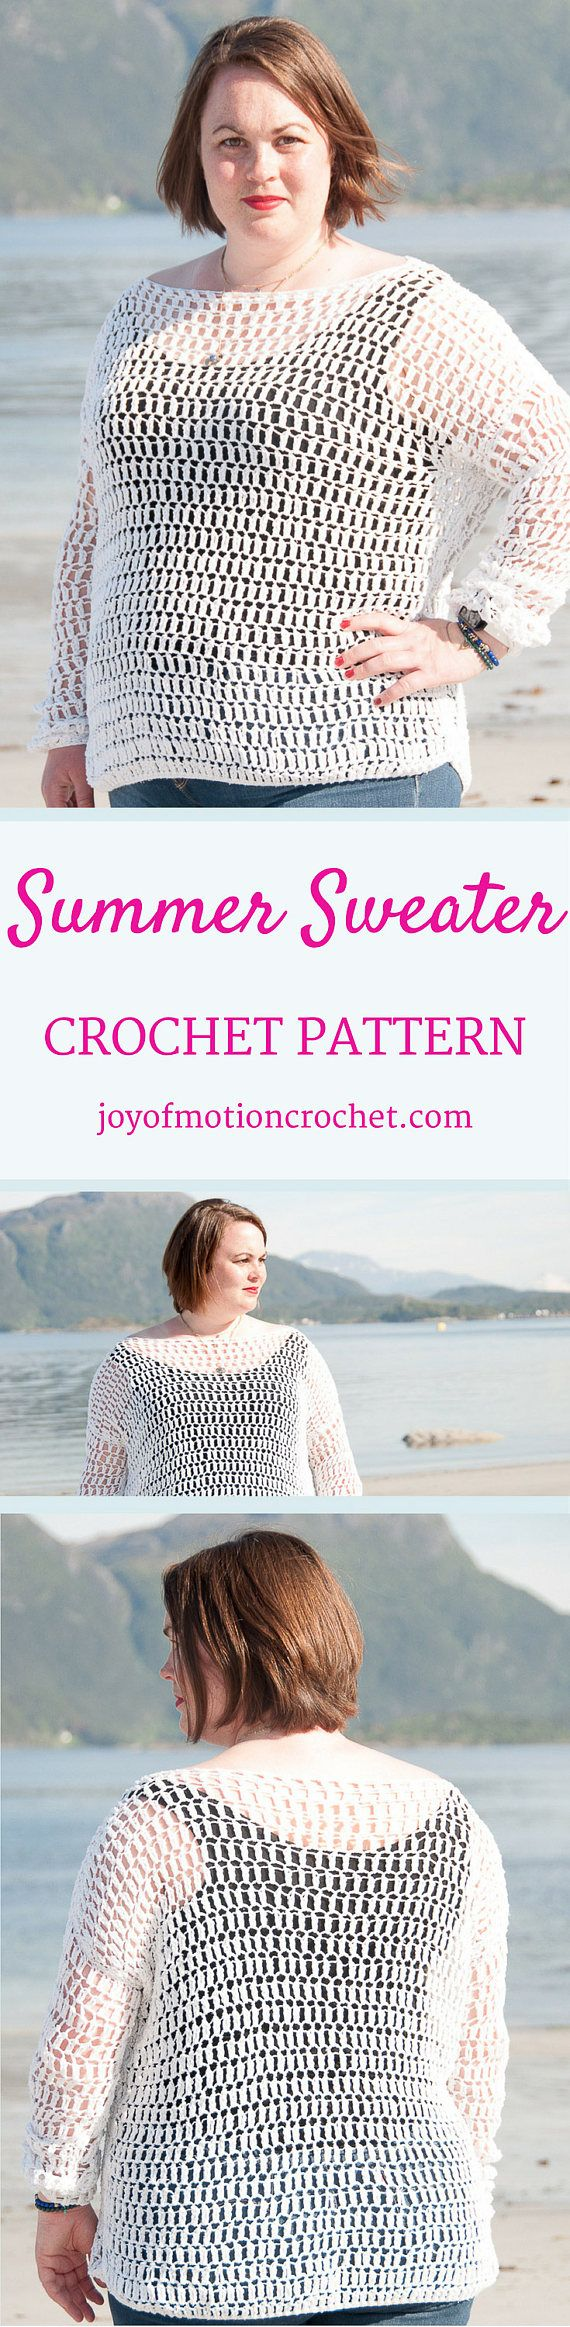 Summer Sweater Crochet Pattern  ★ Crochet pattern for the Summer Sweater, a lacy oversized crochet sweater. ★ Perfect to as a gift or a pattern that will take less than one weekend to make. ★ S – XL. ★ Skill level: EASY ★ Language: English / US crochet terms.  The Summer sweater crochet pattern are a oversized lacy sweater. It's designed with cotton yarn, however if you decide to use wool yarn you can use it all year through. It stitches up quickly, as the stitches are high & the cro...